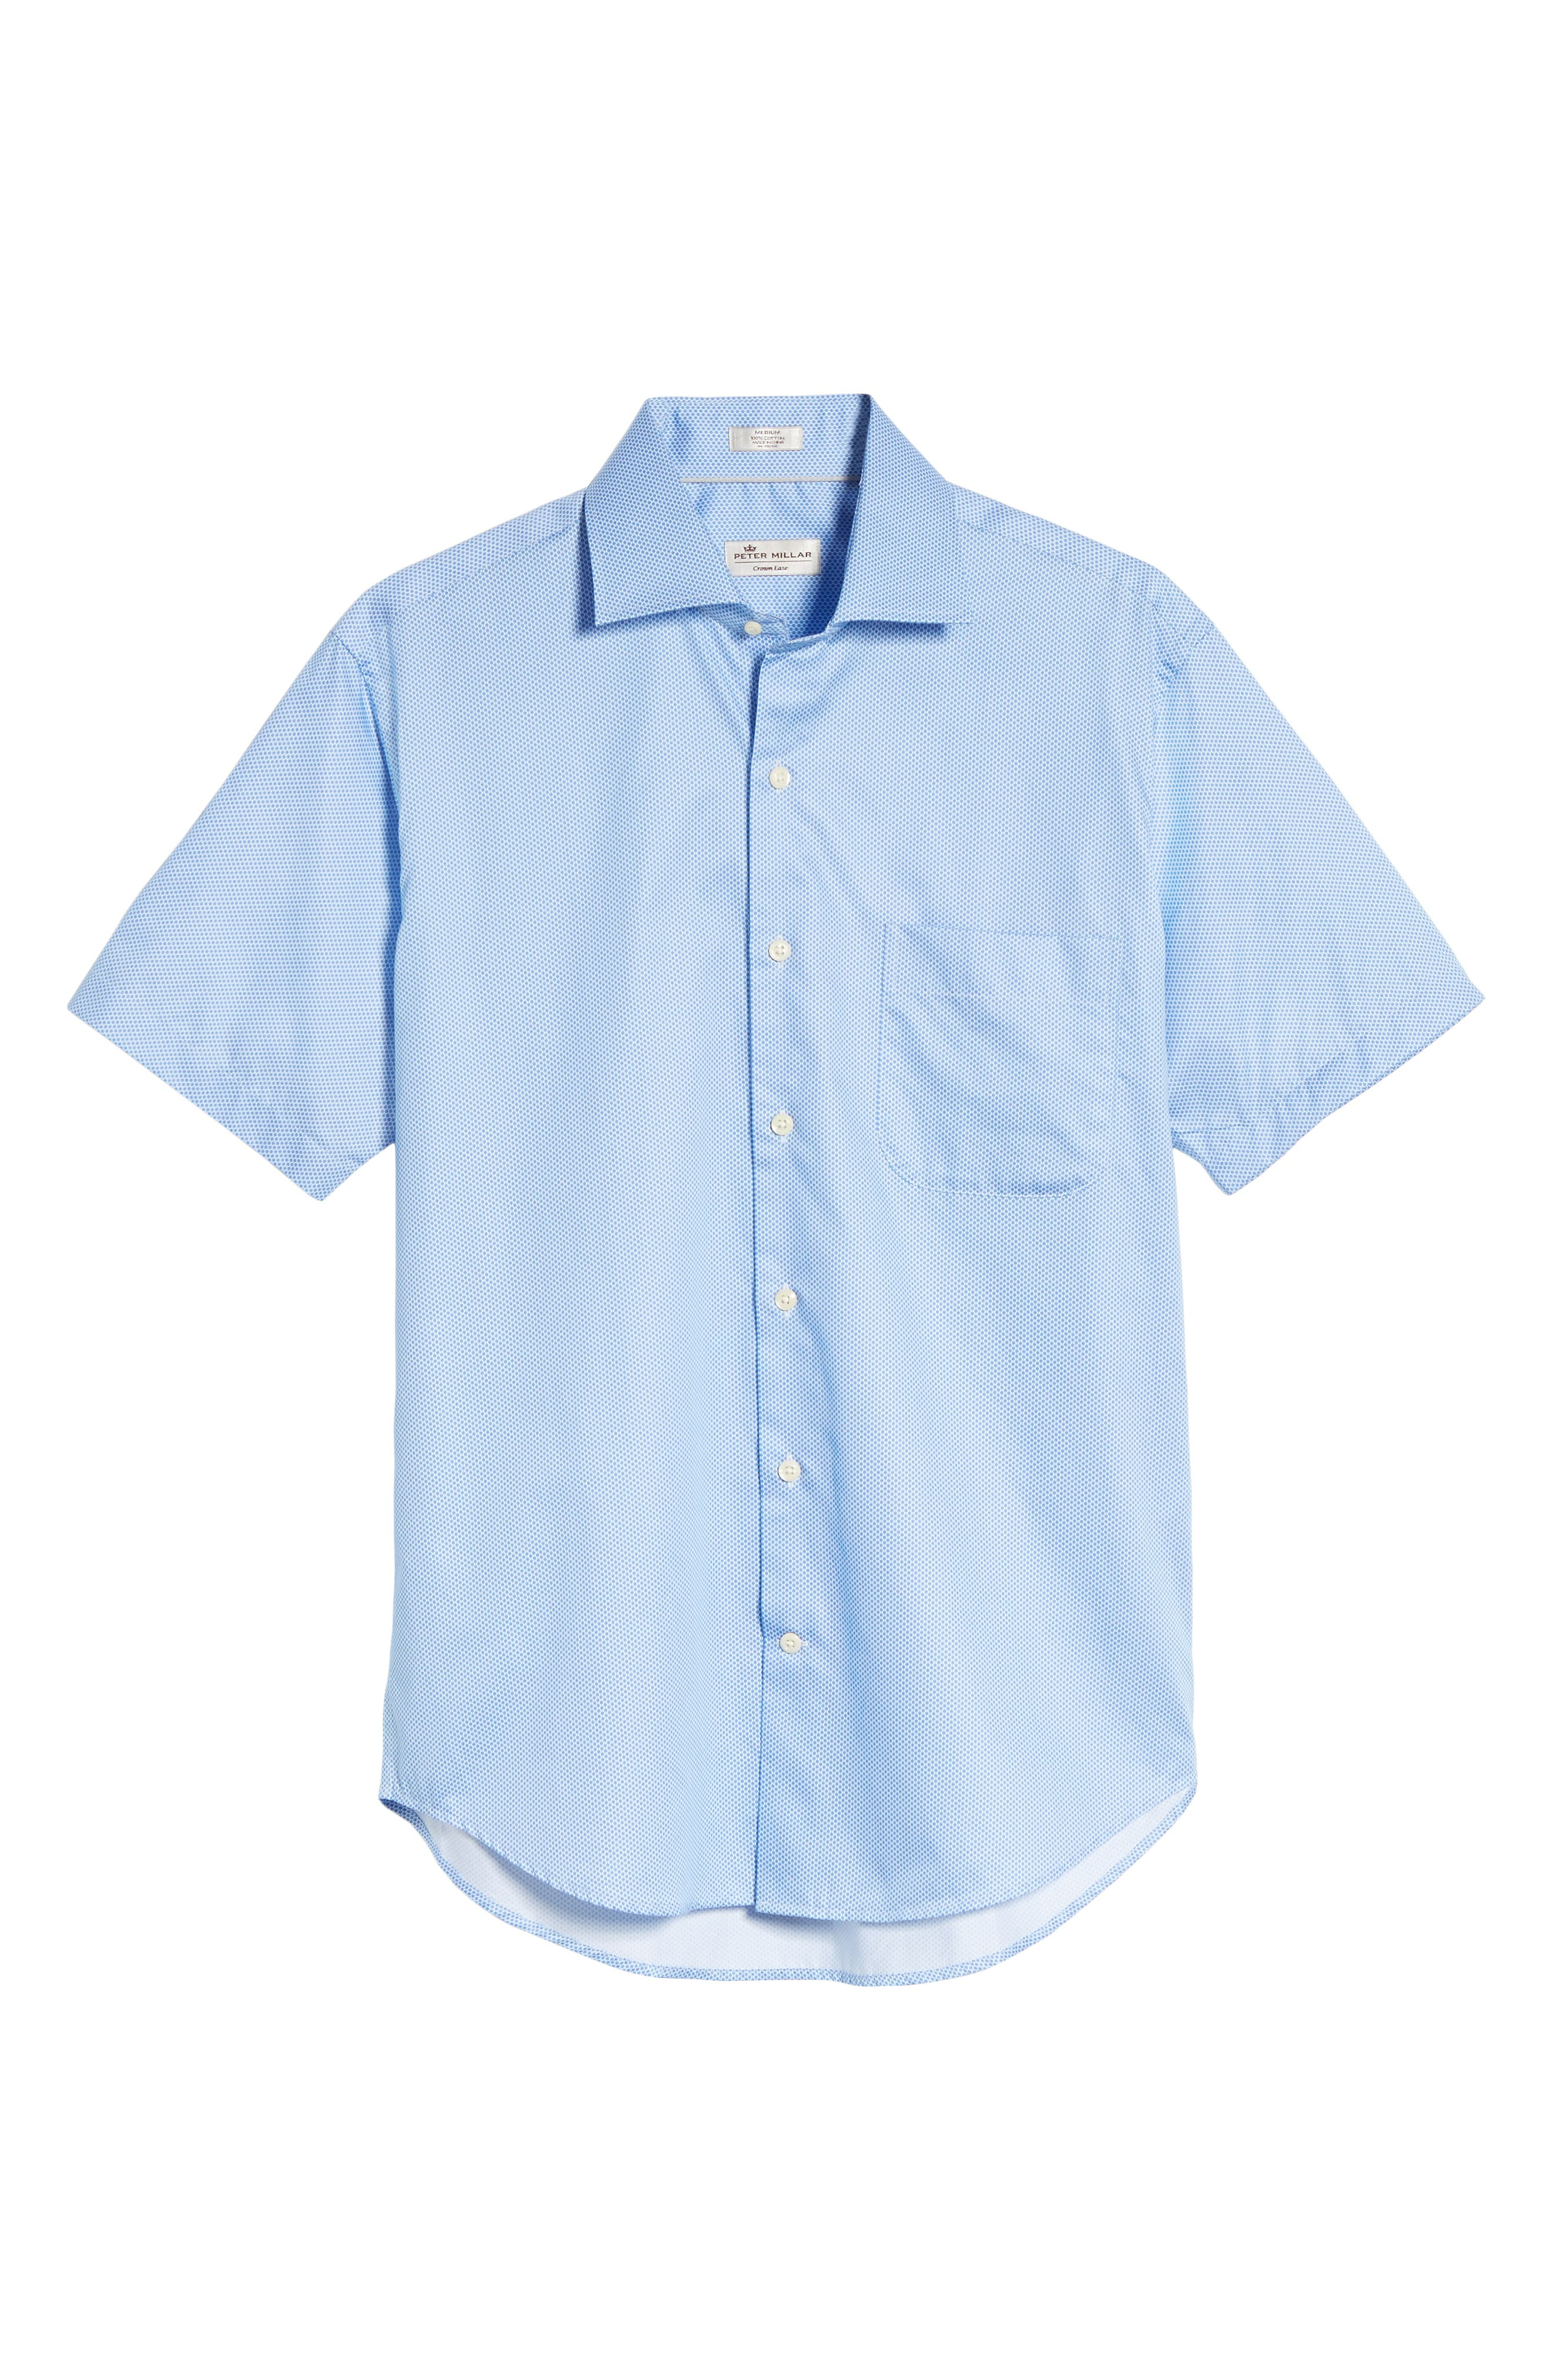 Crown Ease Connecting the Dots Sport Shirt,                             Alternate thumbnail 6, color,                             ATLAS BLUE